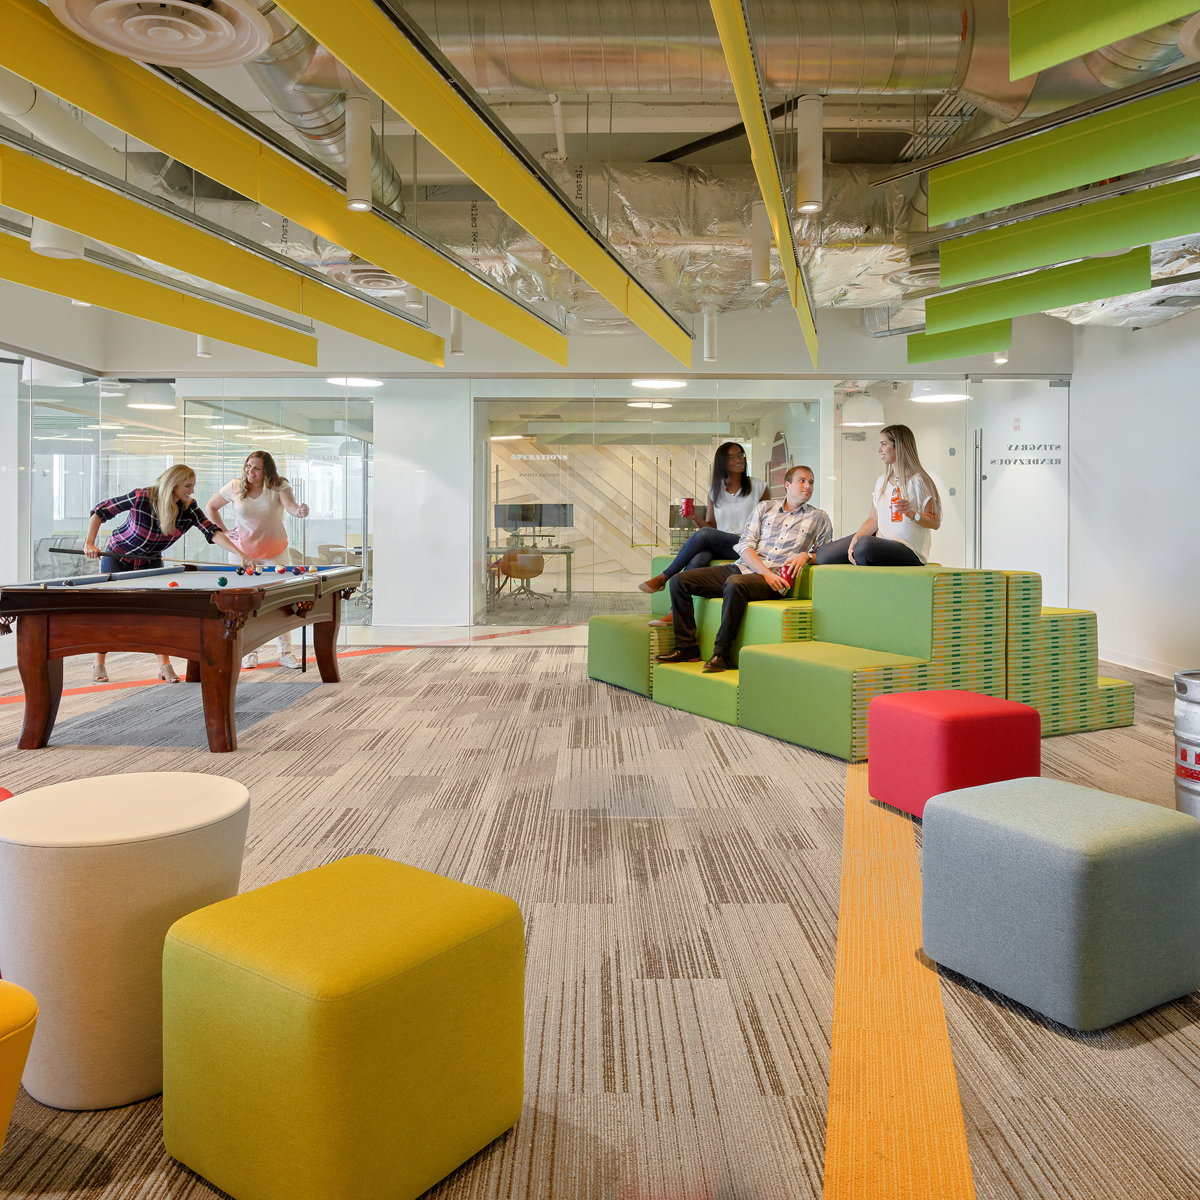 Stantec Designs Wix's Office and Technical Call Center in Miami Beach